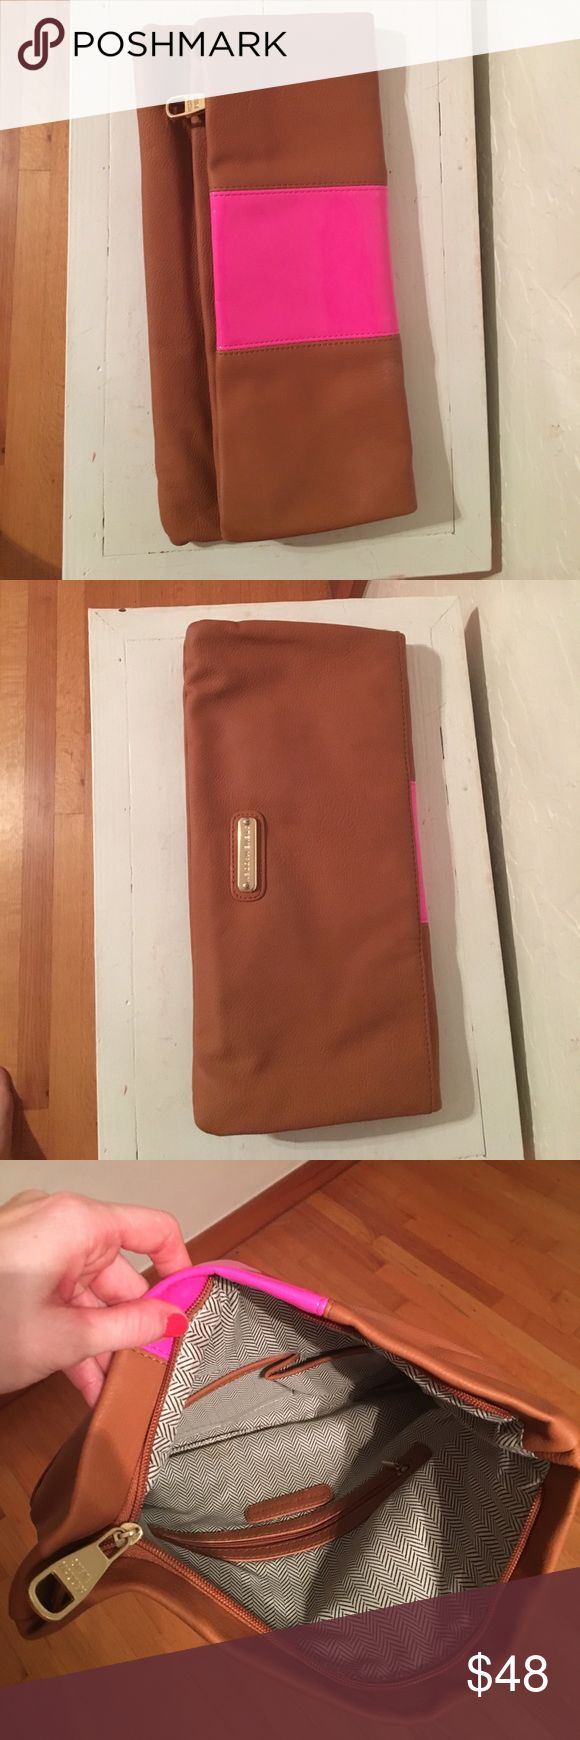 Steve Madden Folder Over Clutch Brown with a pink stripe clutch! Great for summer! Steve Madden Bags Clutches & Wristlets